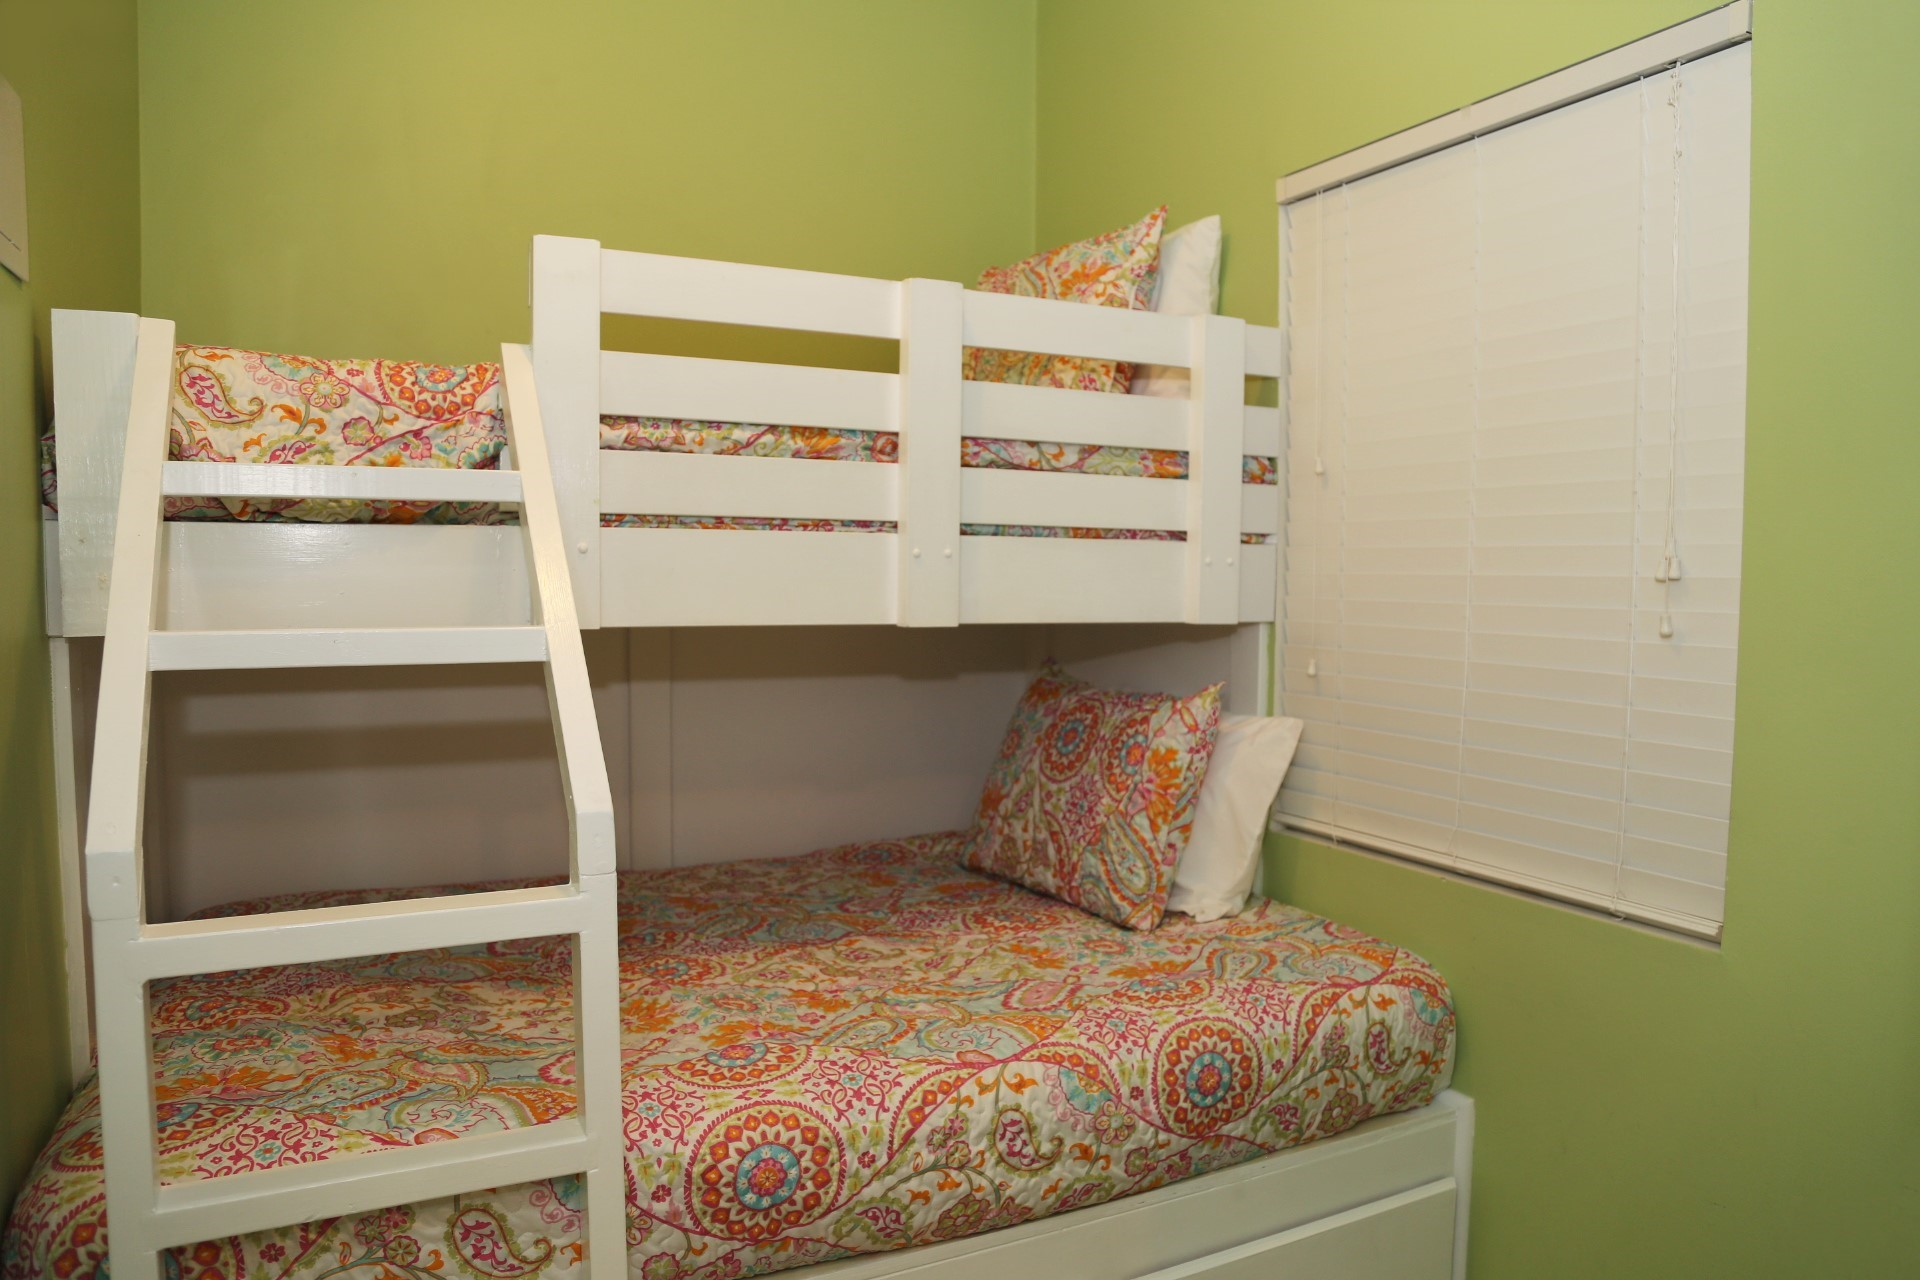 Bunk beds for the kids!